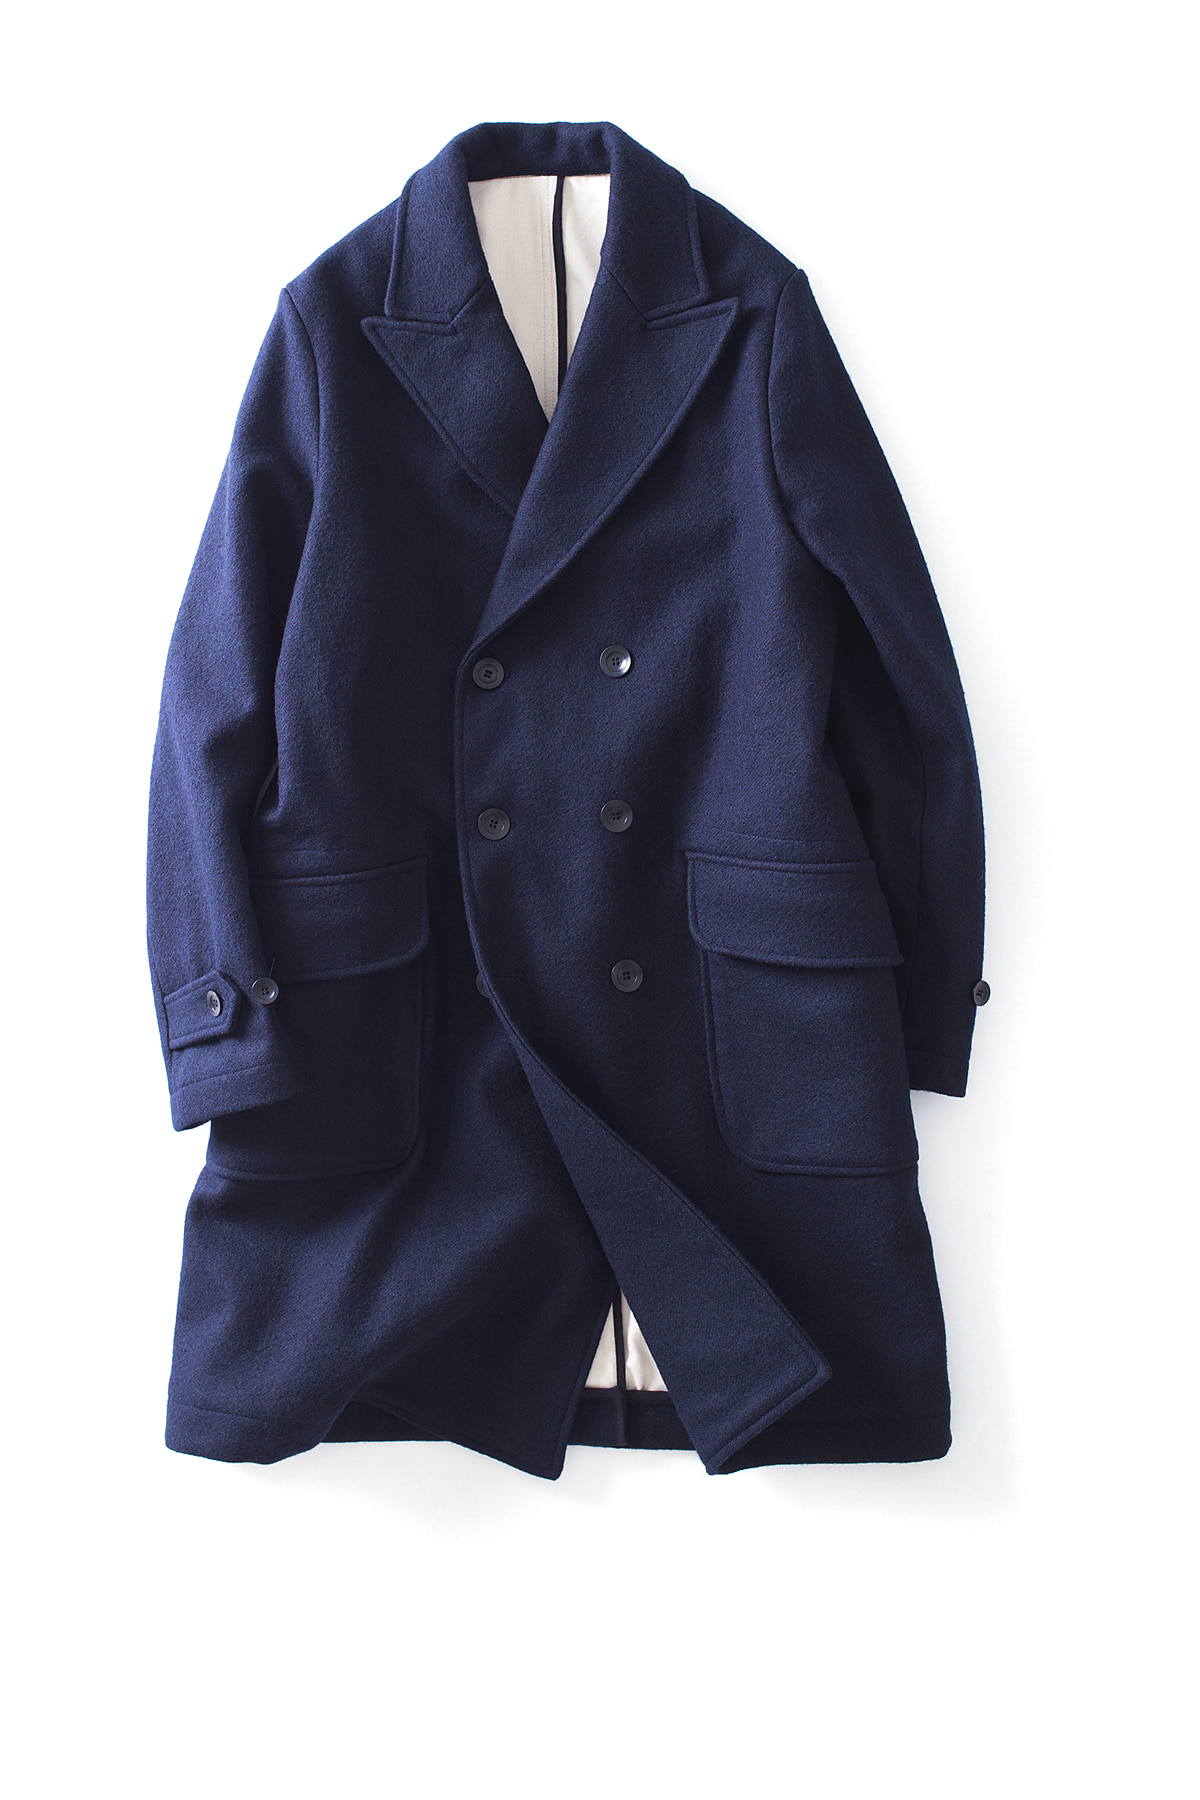 EHS : D.B Coat (Navy)